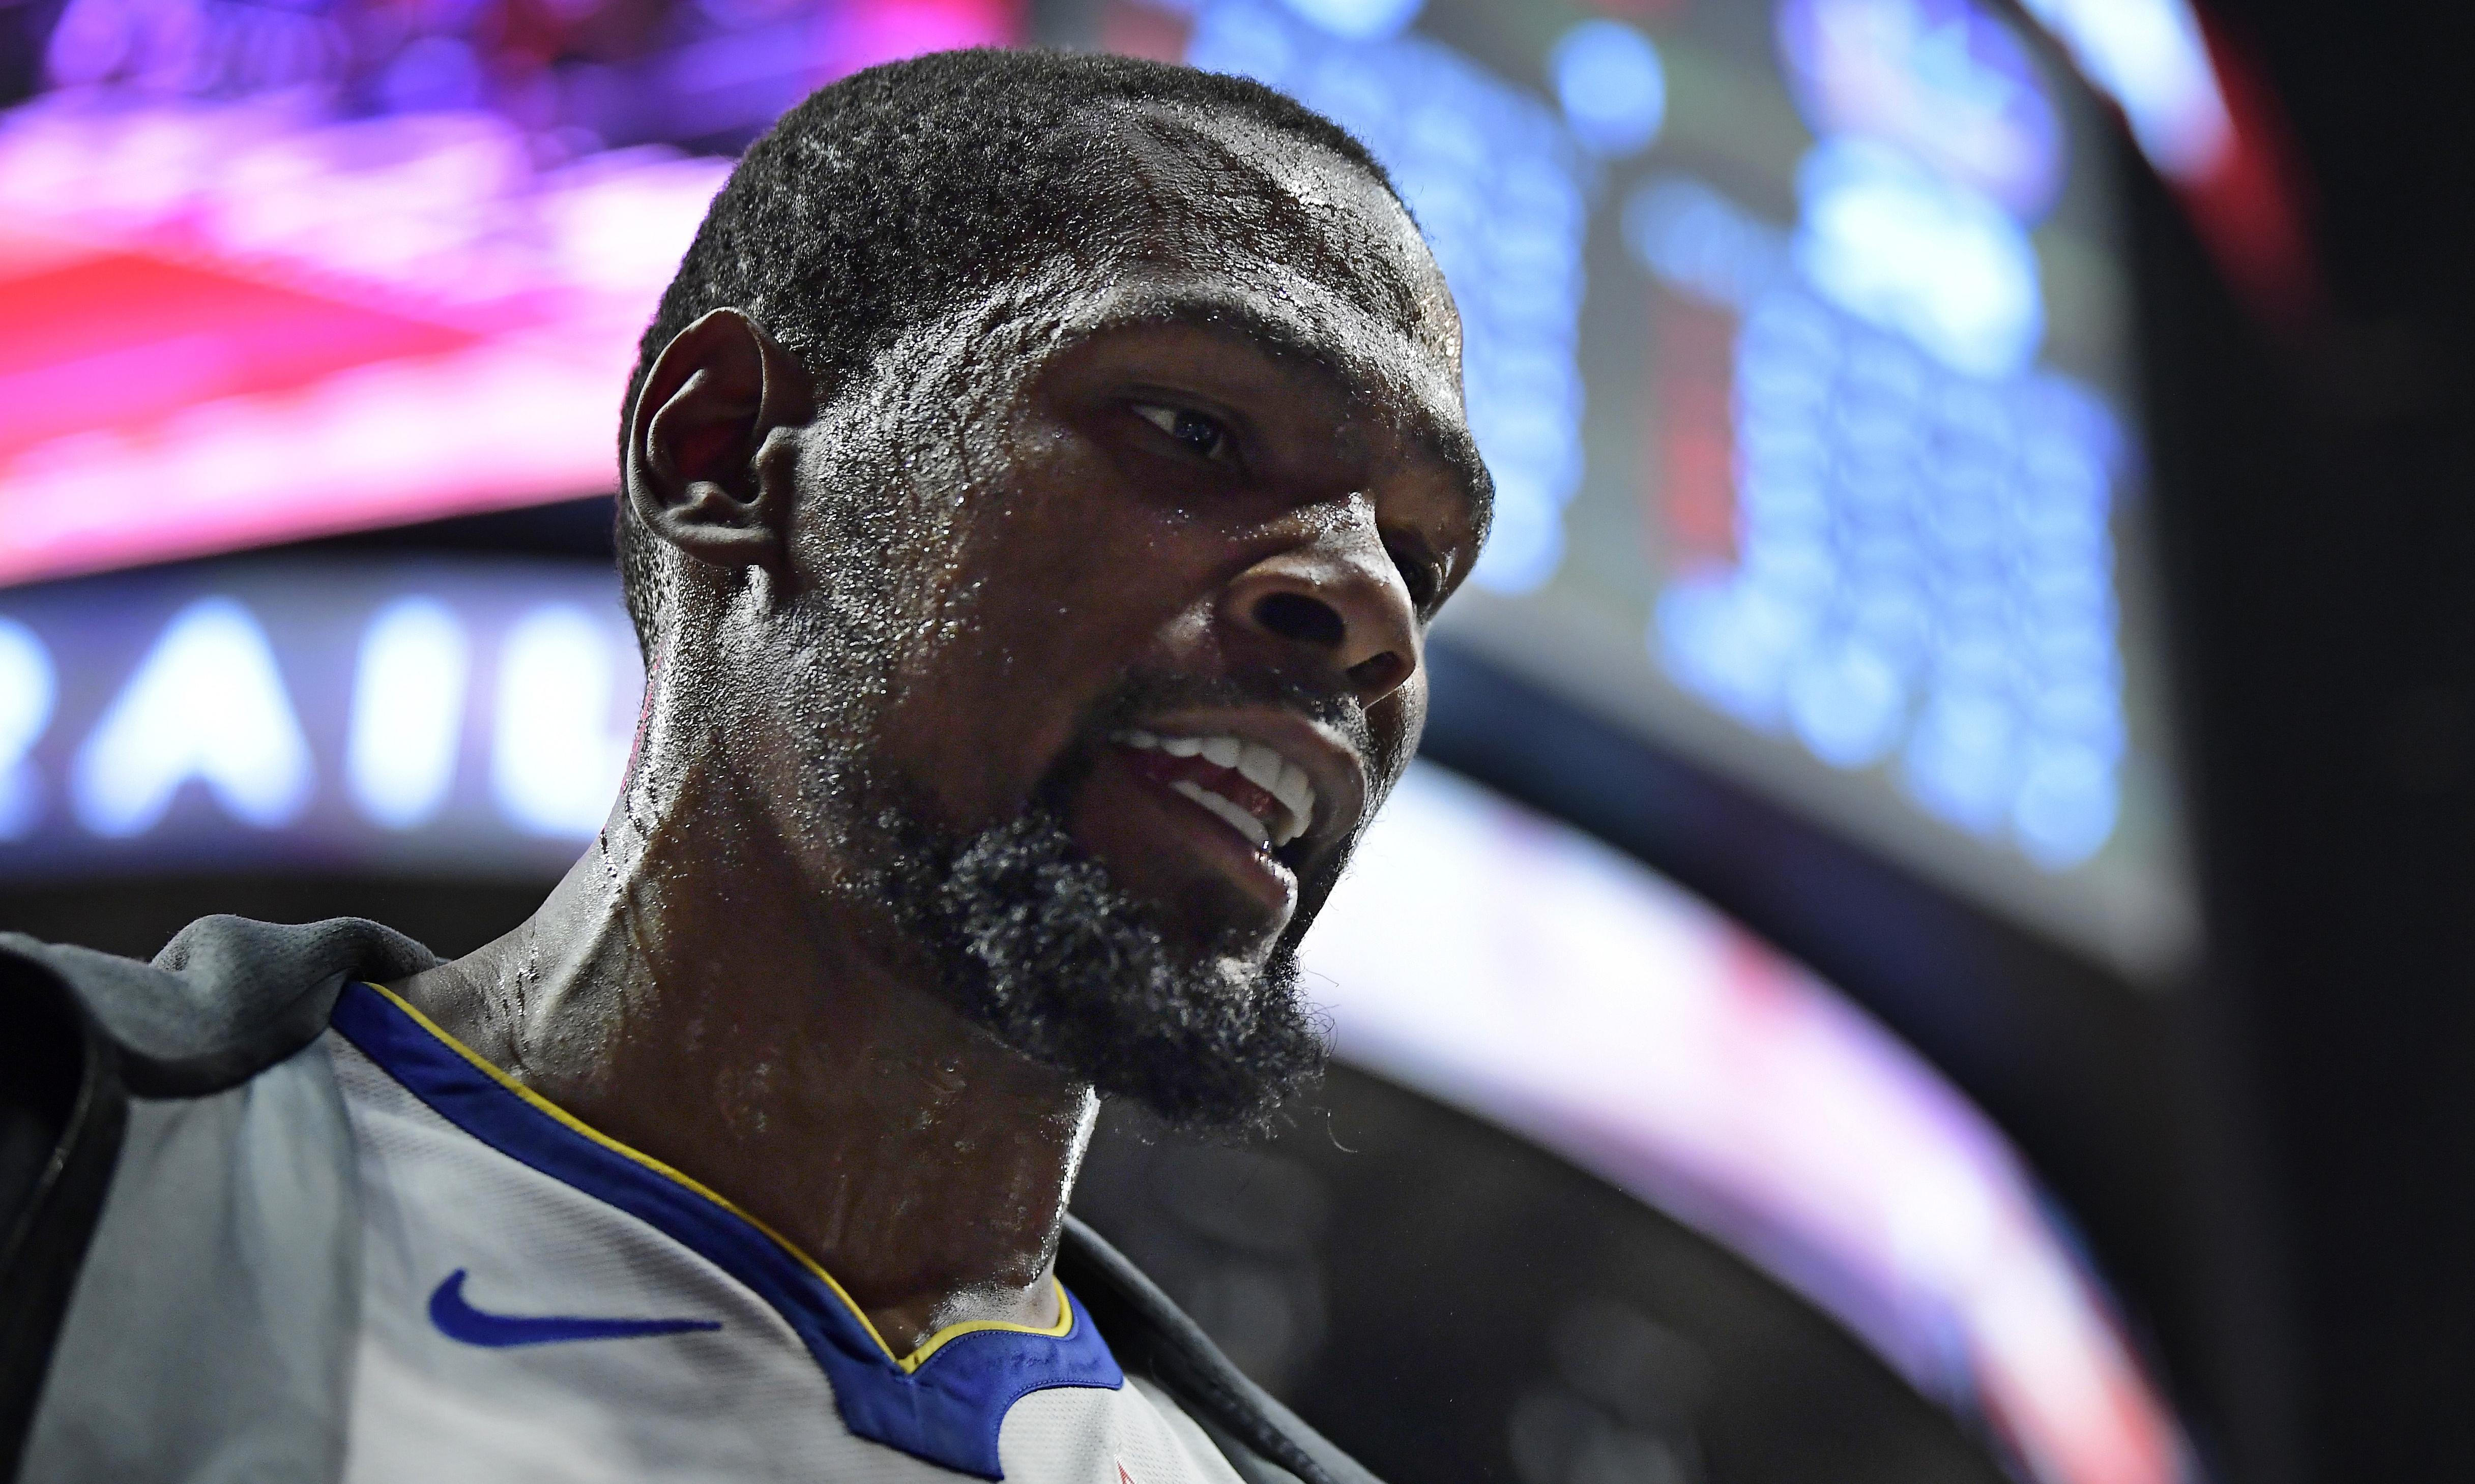 'Some days I hate the NBA': Kevin Durant reflects on relationship with basketball